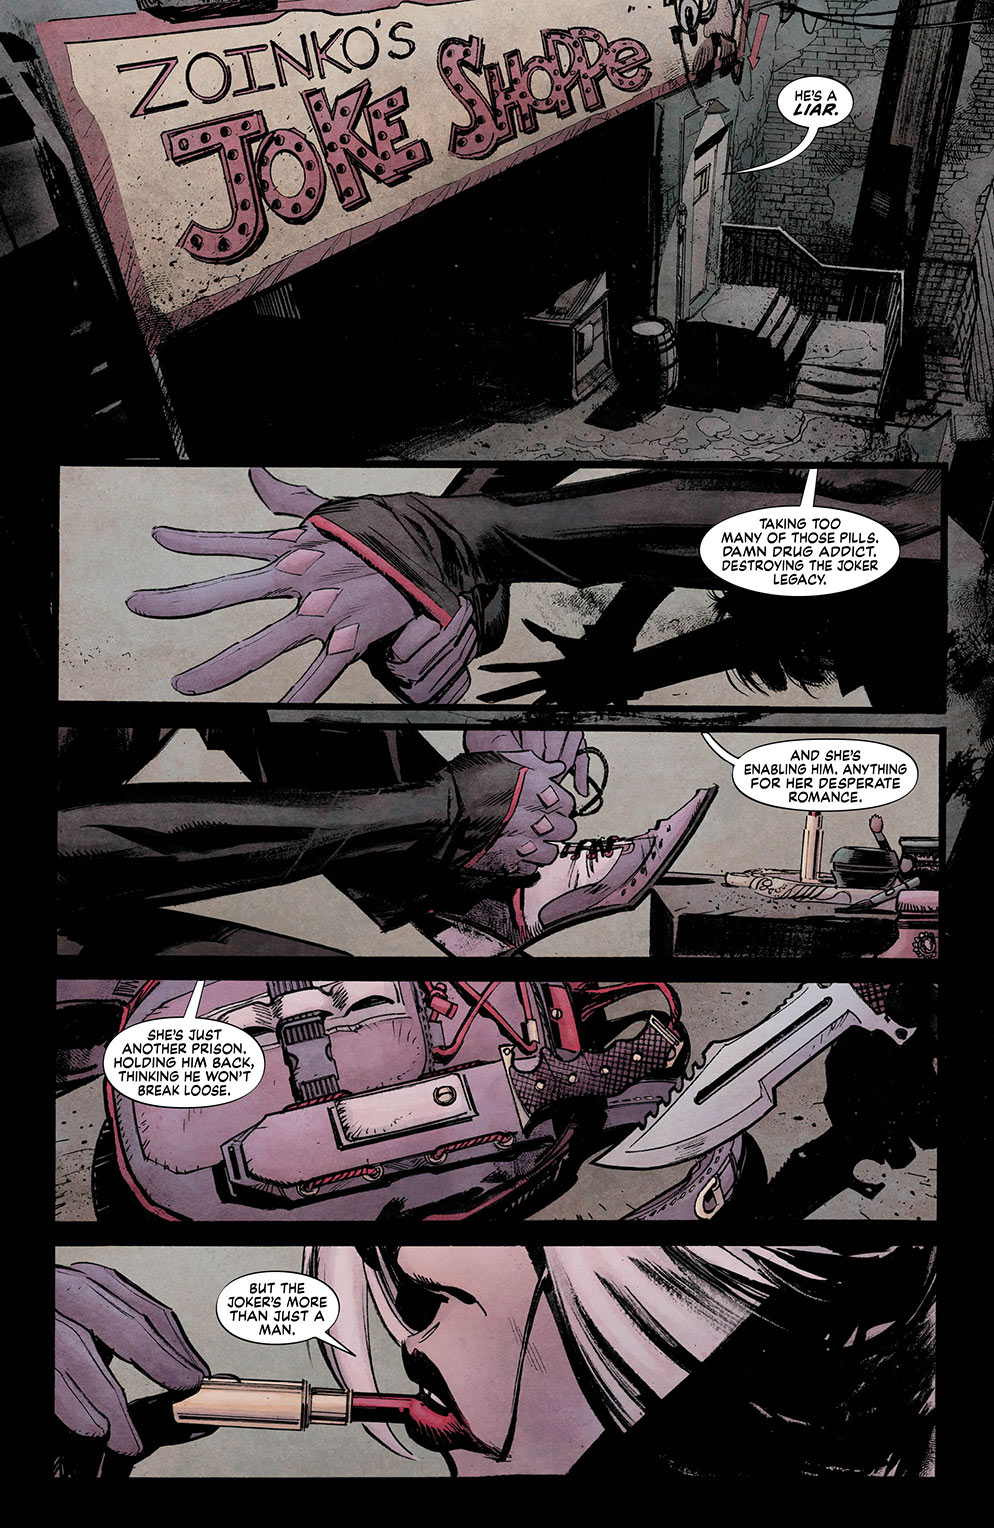 Batman White Knight 3_1 - DC Comics News